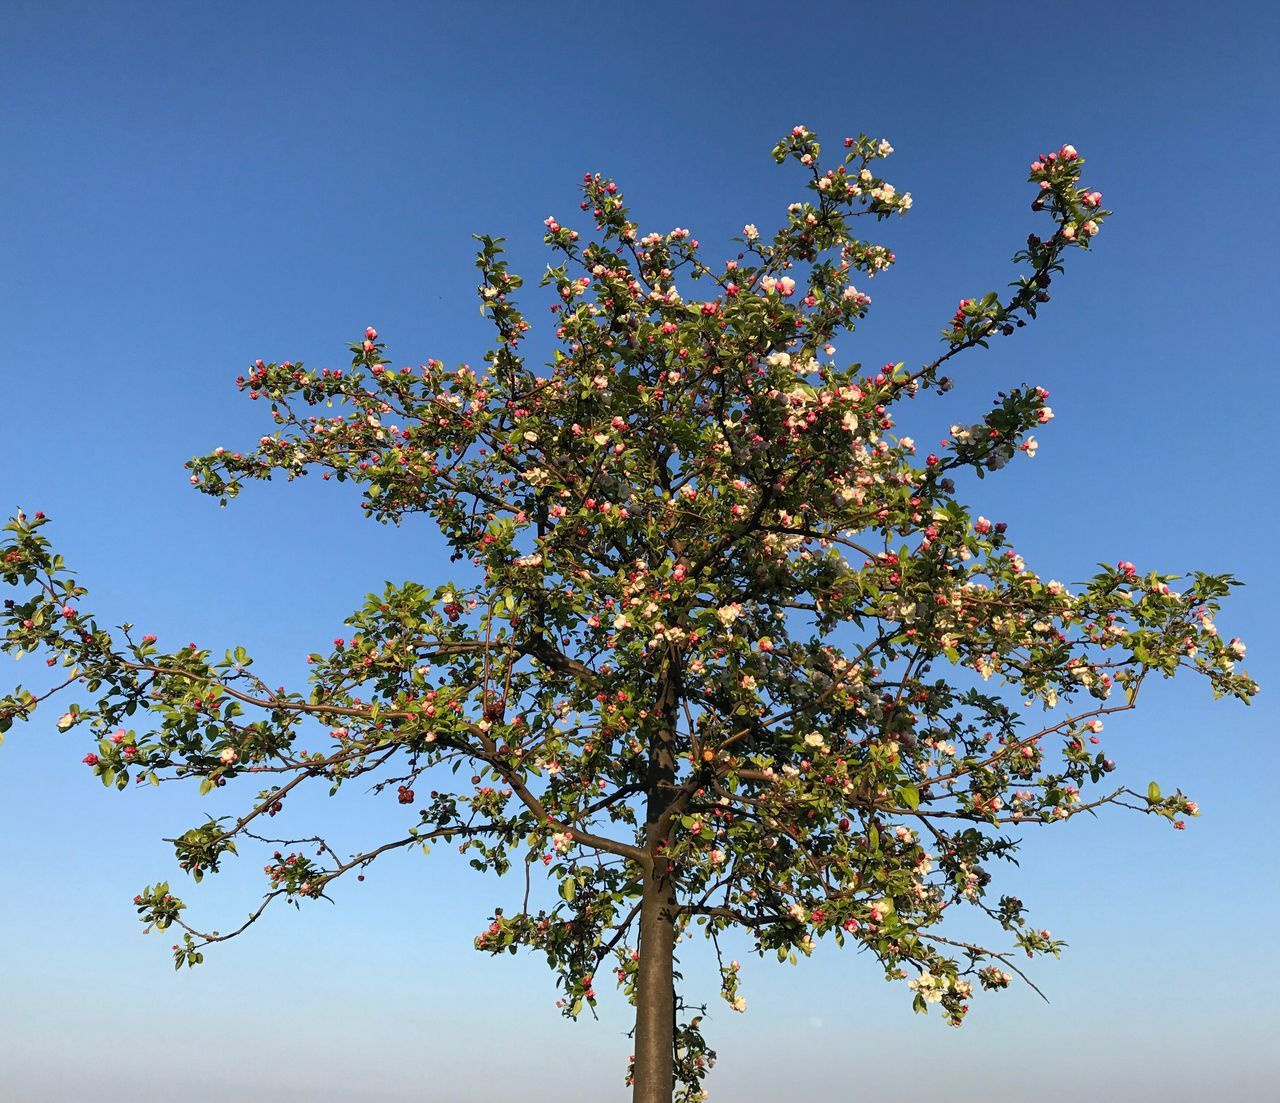 Tree Low Angle View Clear Sky Growth Nature Beauty In Nature Branch No People Outdoors Day Sky Fragility Freshness Nature Spring Beauty In Nature Tree Flower Plum Blossom Growth Spring Is Coming  Leaf Freshness Sunlight Springtime